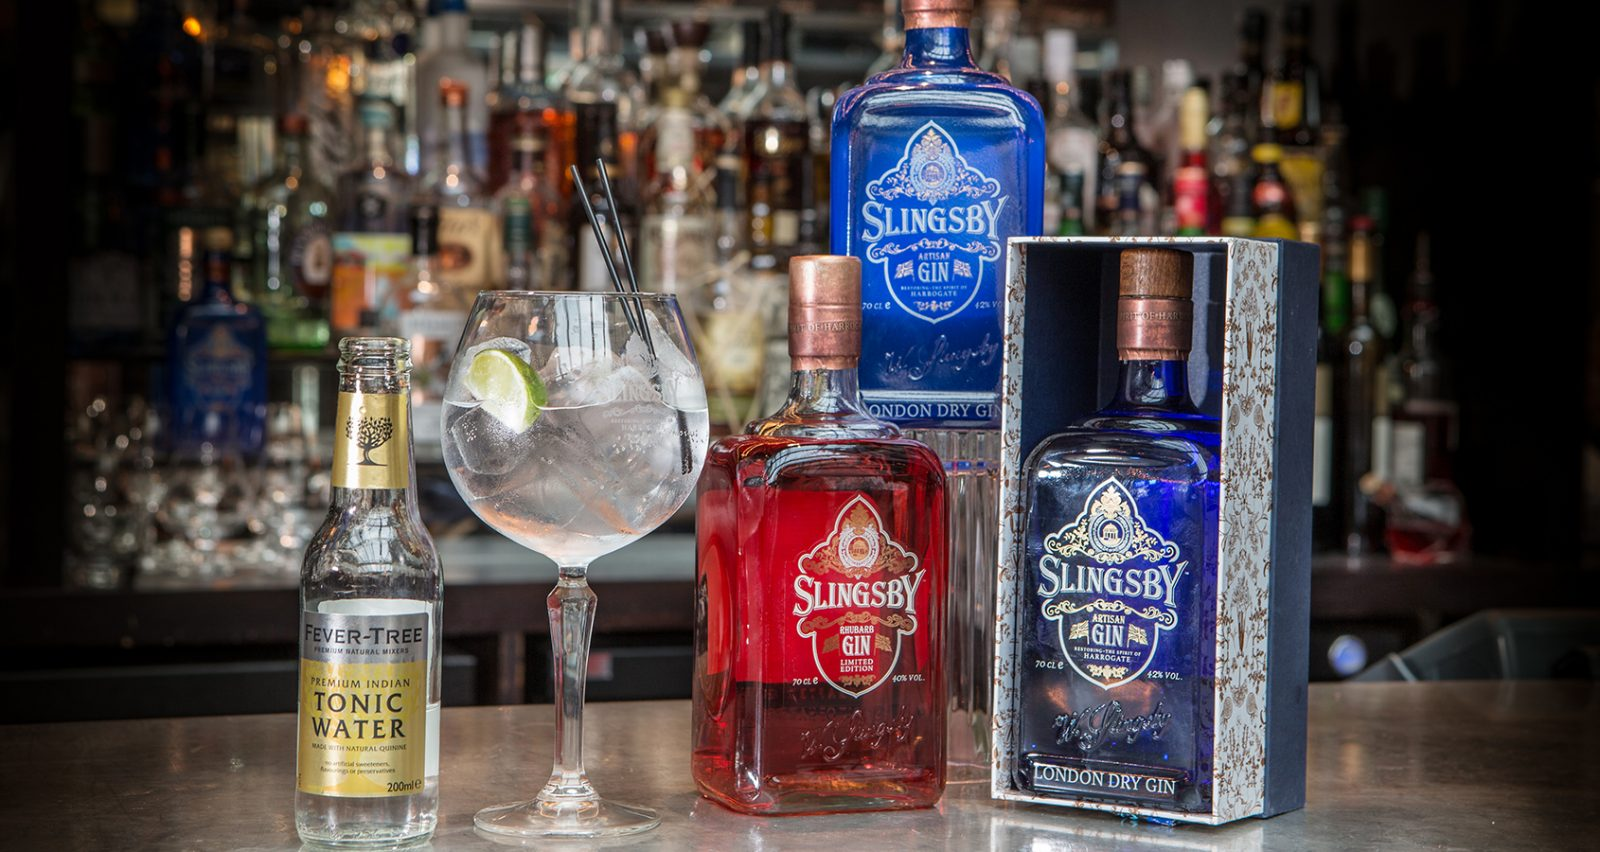 Slingsby gin masterclass